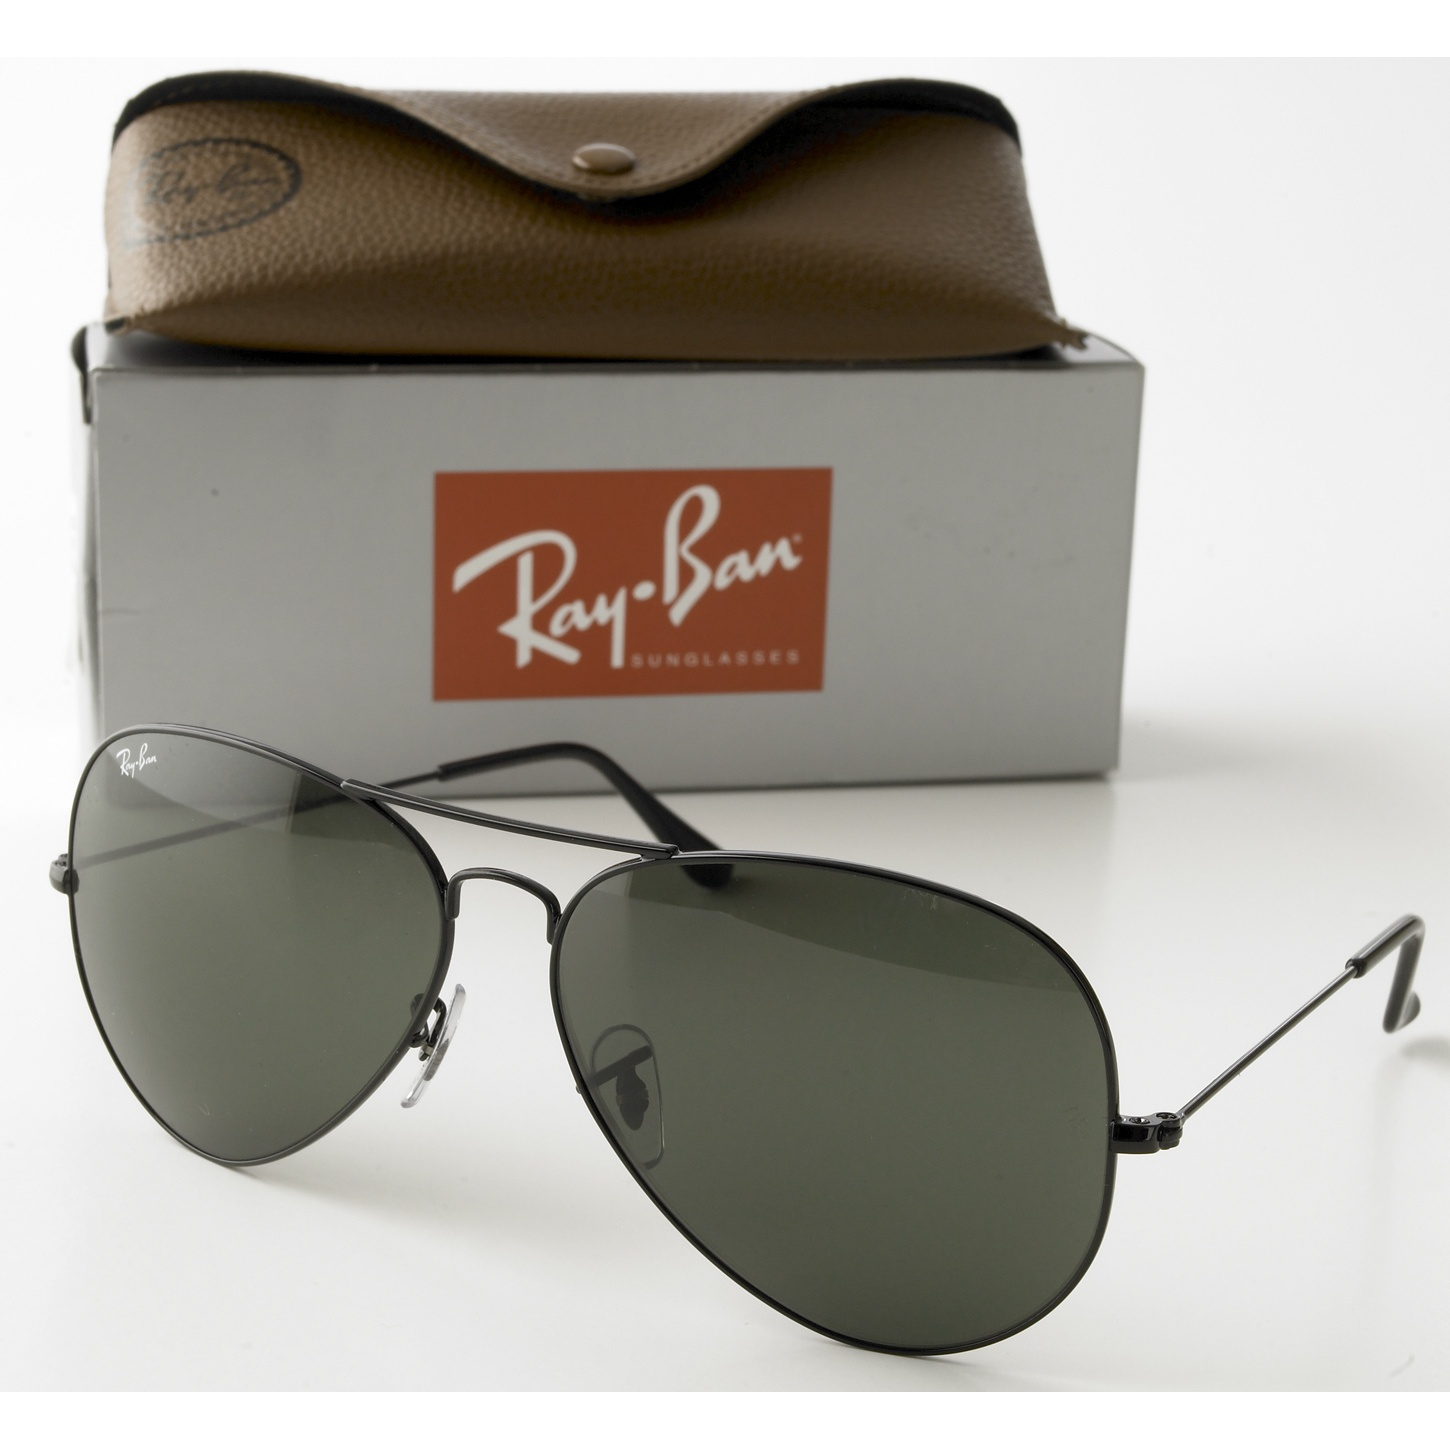 ray ban pilot aviator sunglasses  Rayban Aviator Sunglasses - Black Frame with 58mm G-15 Lens